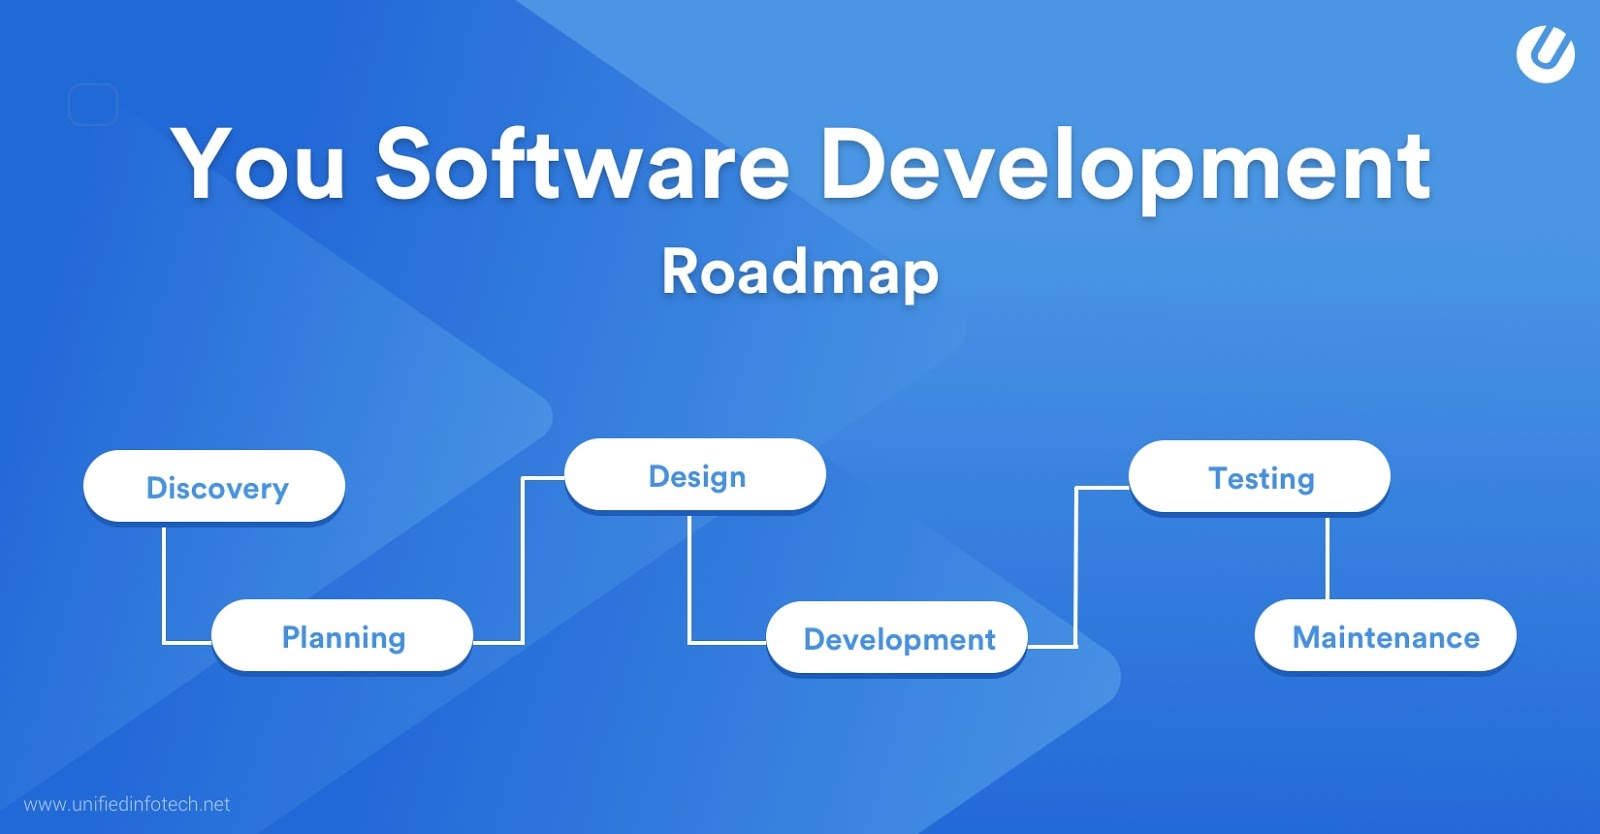 6 Stages of Software Development Process